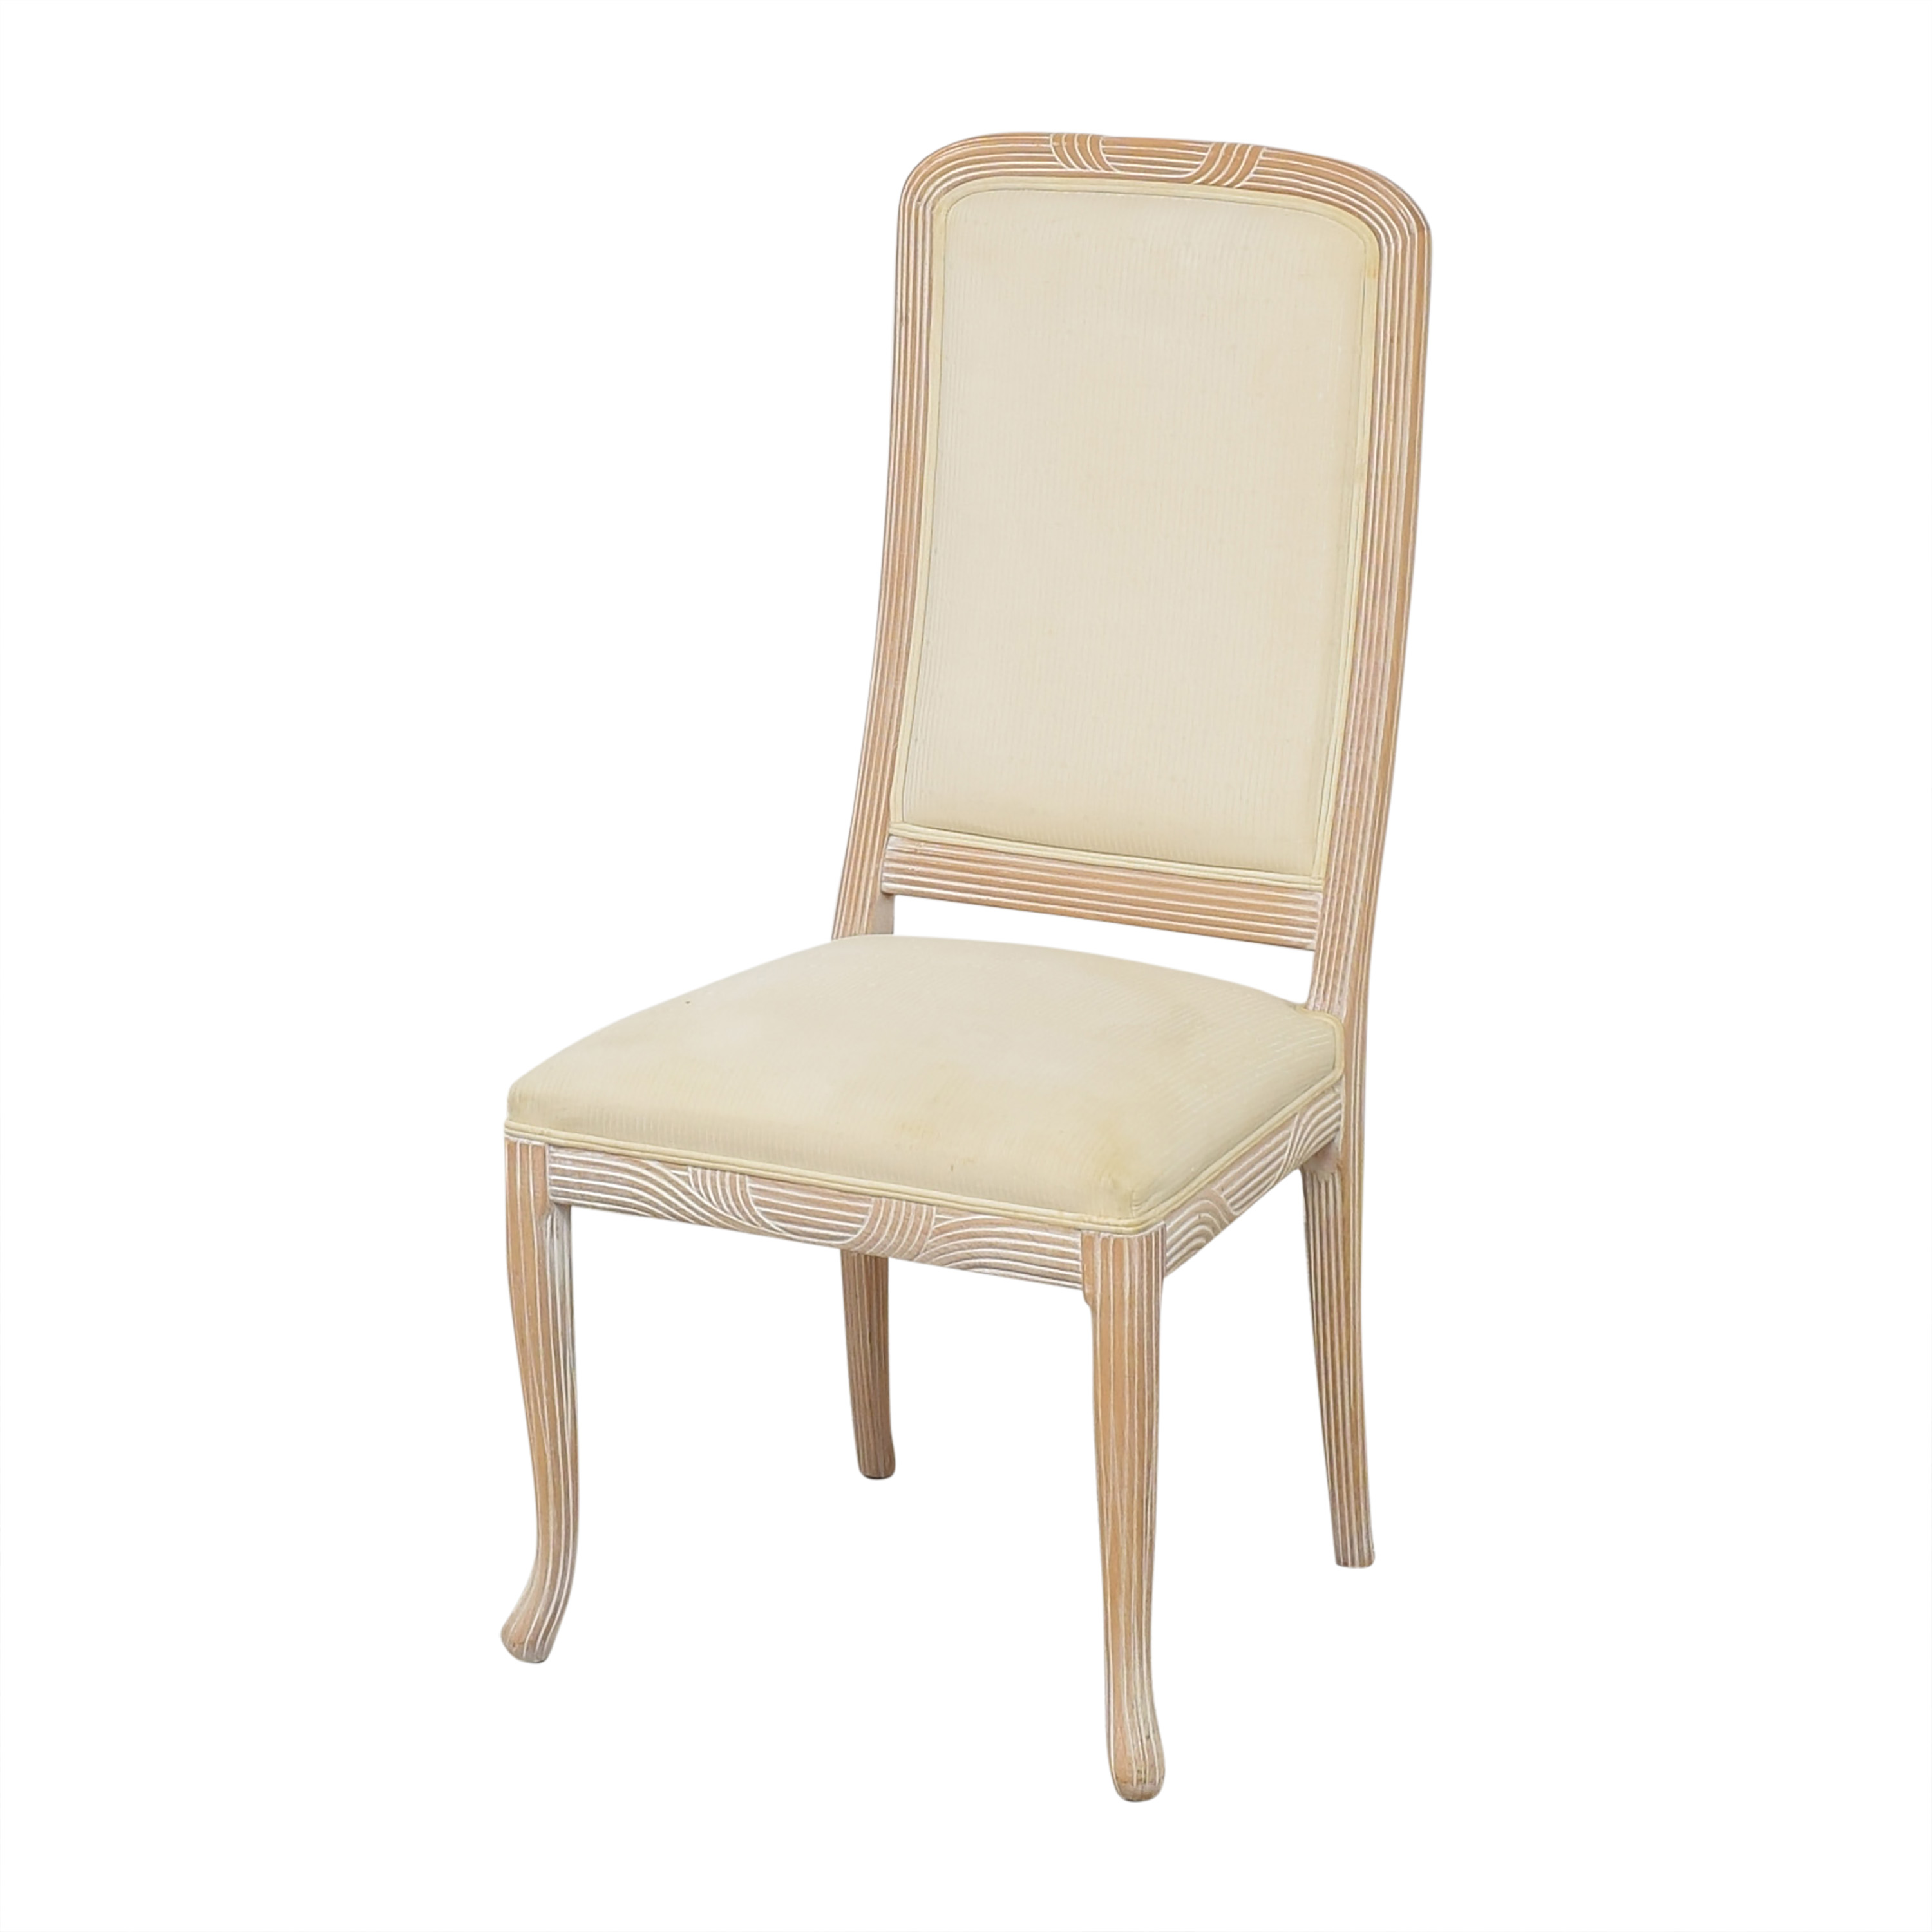 Buying & Design Buying & Design Upholstered Dining Side Chairs beige